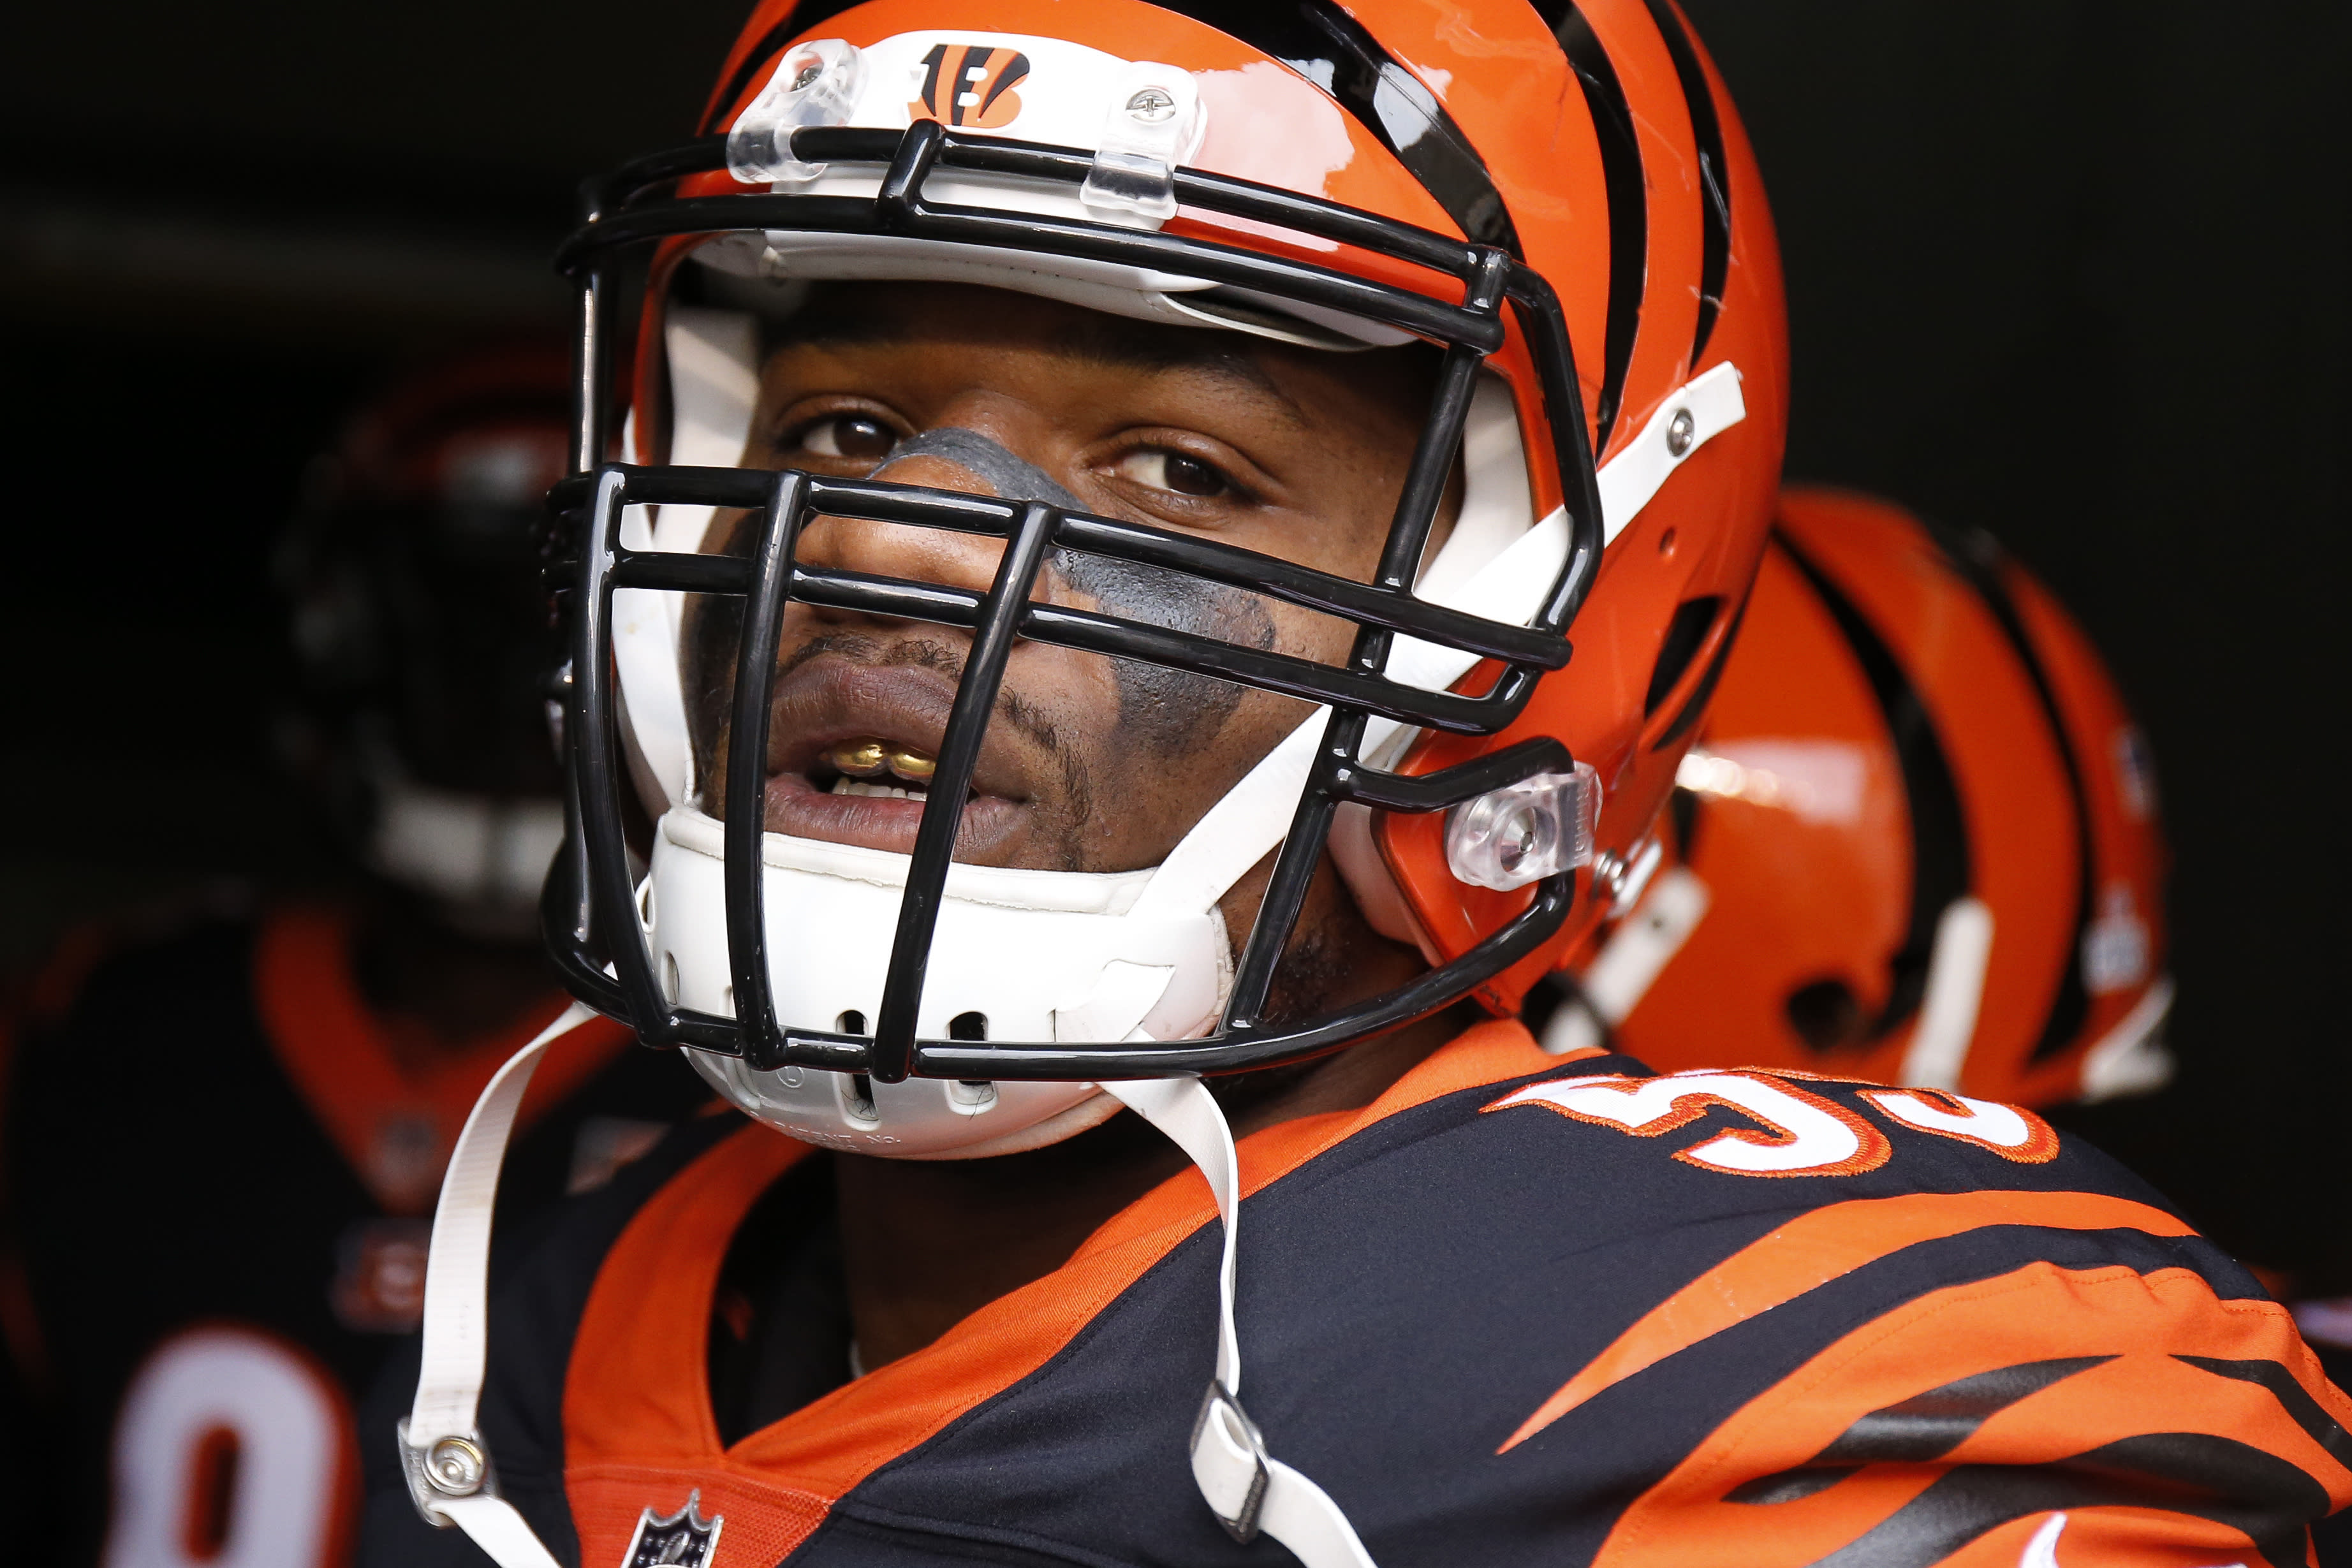 Vontaze Burfict doesn't talk to reporters after being involved in another questionable hit